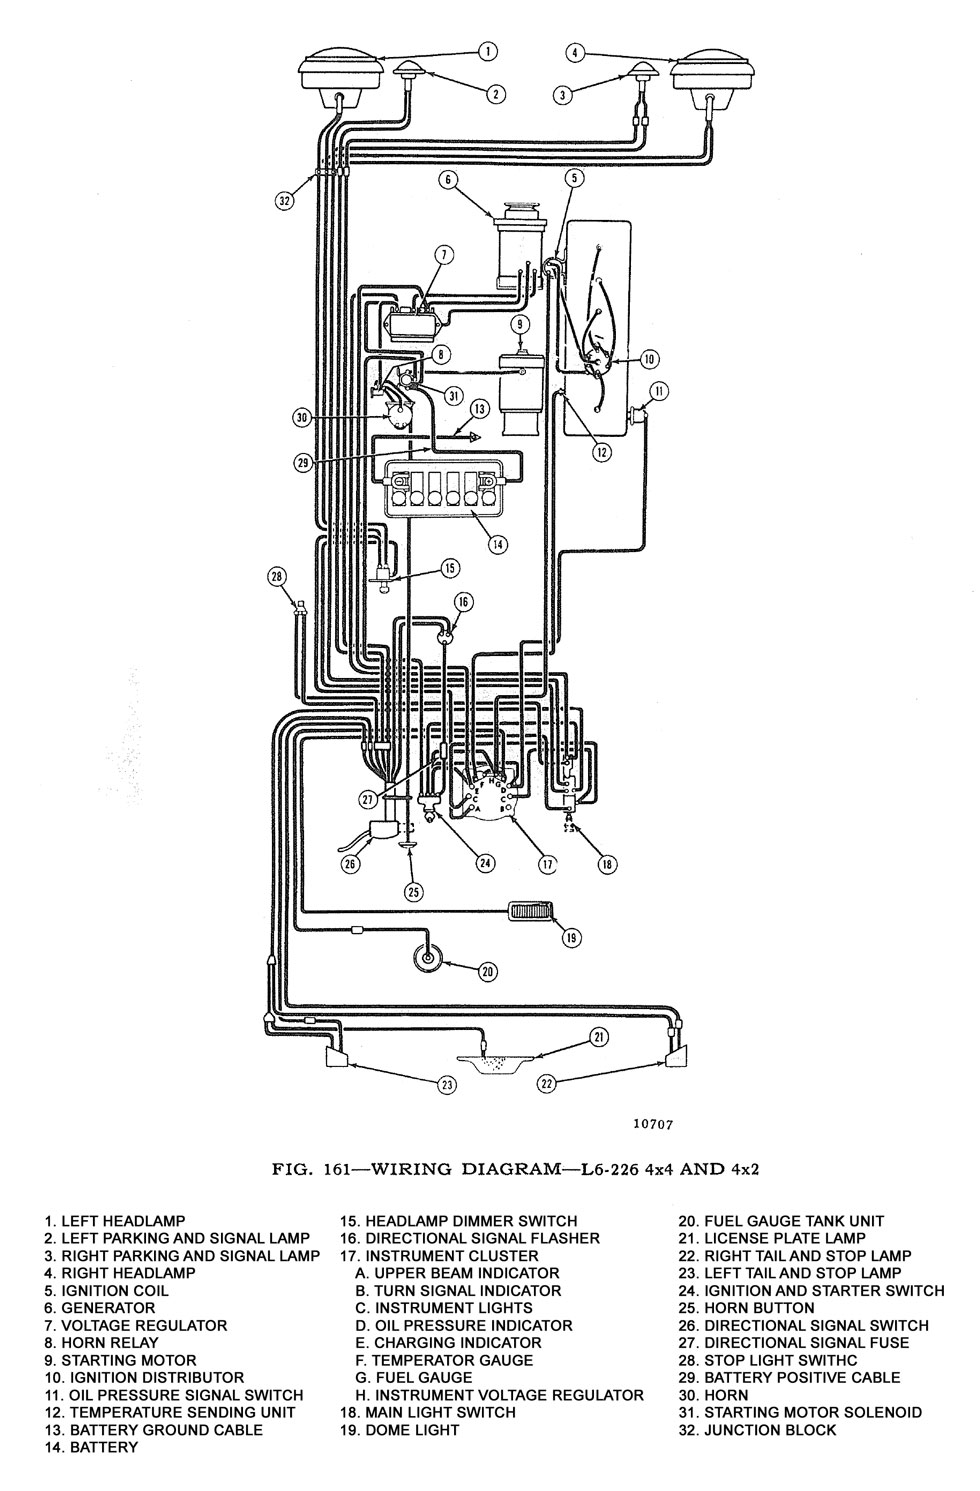 medium resolution of wiring diagram l6 226 4x4 and 4x2kaiser willys wiring diagrams 1